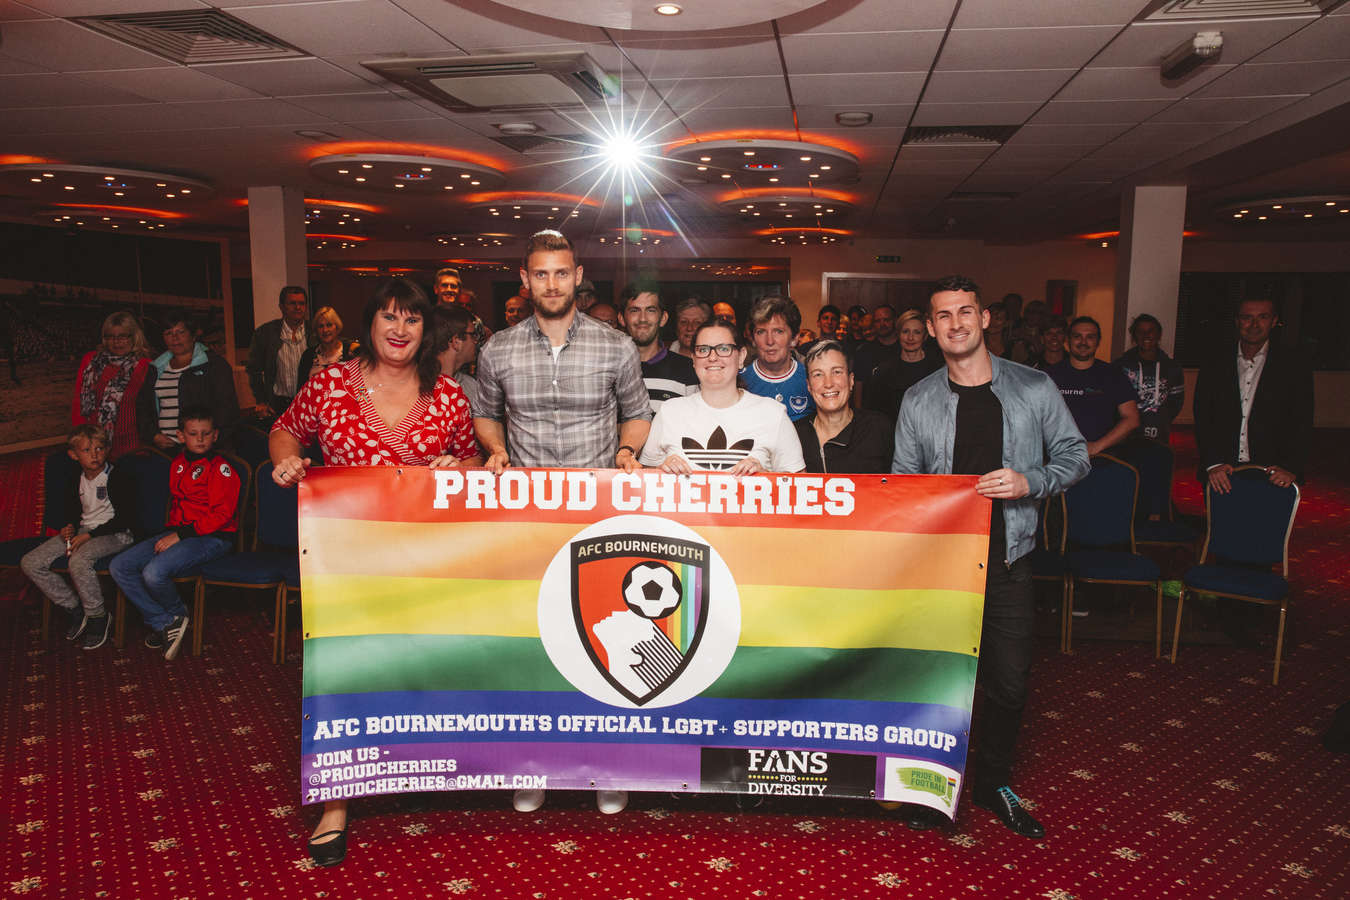 Cherries to Host an Evening with Proud Cherries